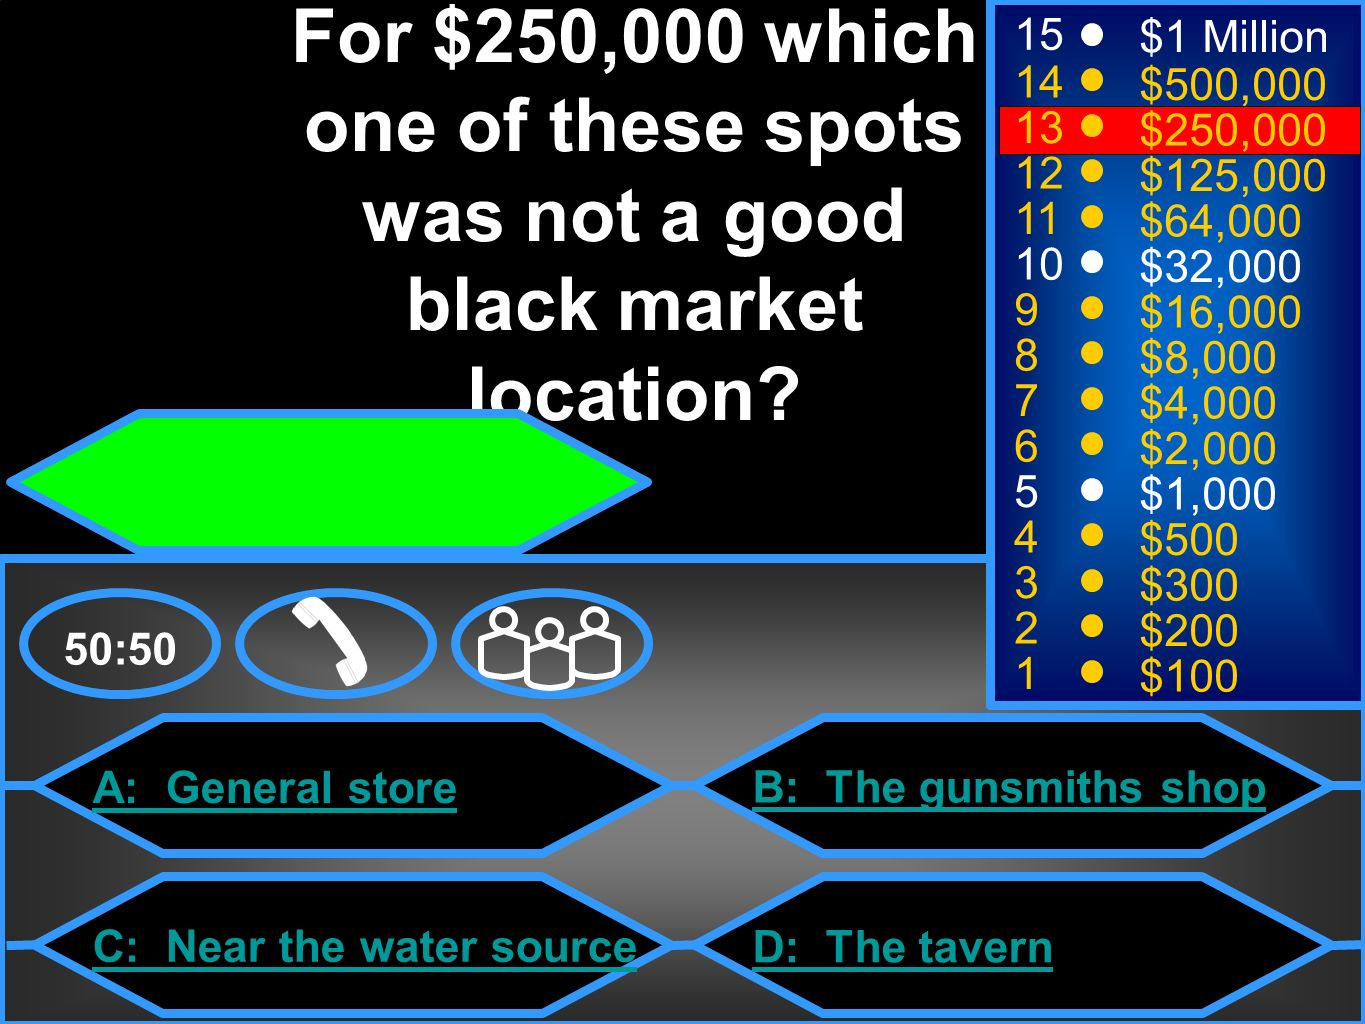 A: General store C: Near the water source B: The gunsmiths shop D: The tavern 50:50 15 14 13 12 11 10 9 8 7 6 5 4 3 2 1 $1 Million $500,000 $250,000 $125,000 $64,000 $32,000 $16,000 $8,000 $4,000 $2,000 $1,000 $500 $300 $200 $100 For $250,000 which one of these spots was not a good black market location